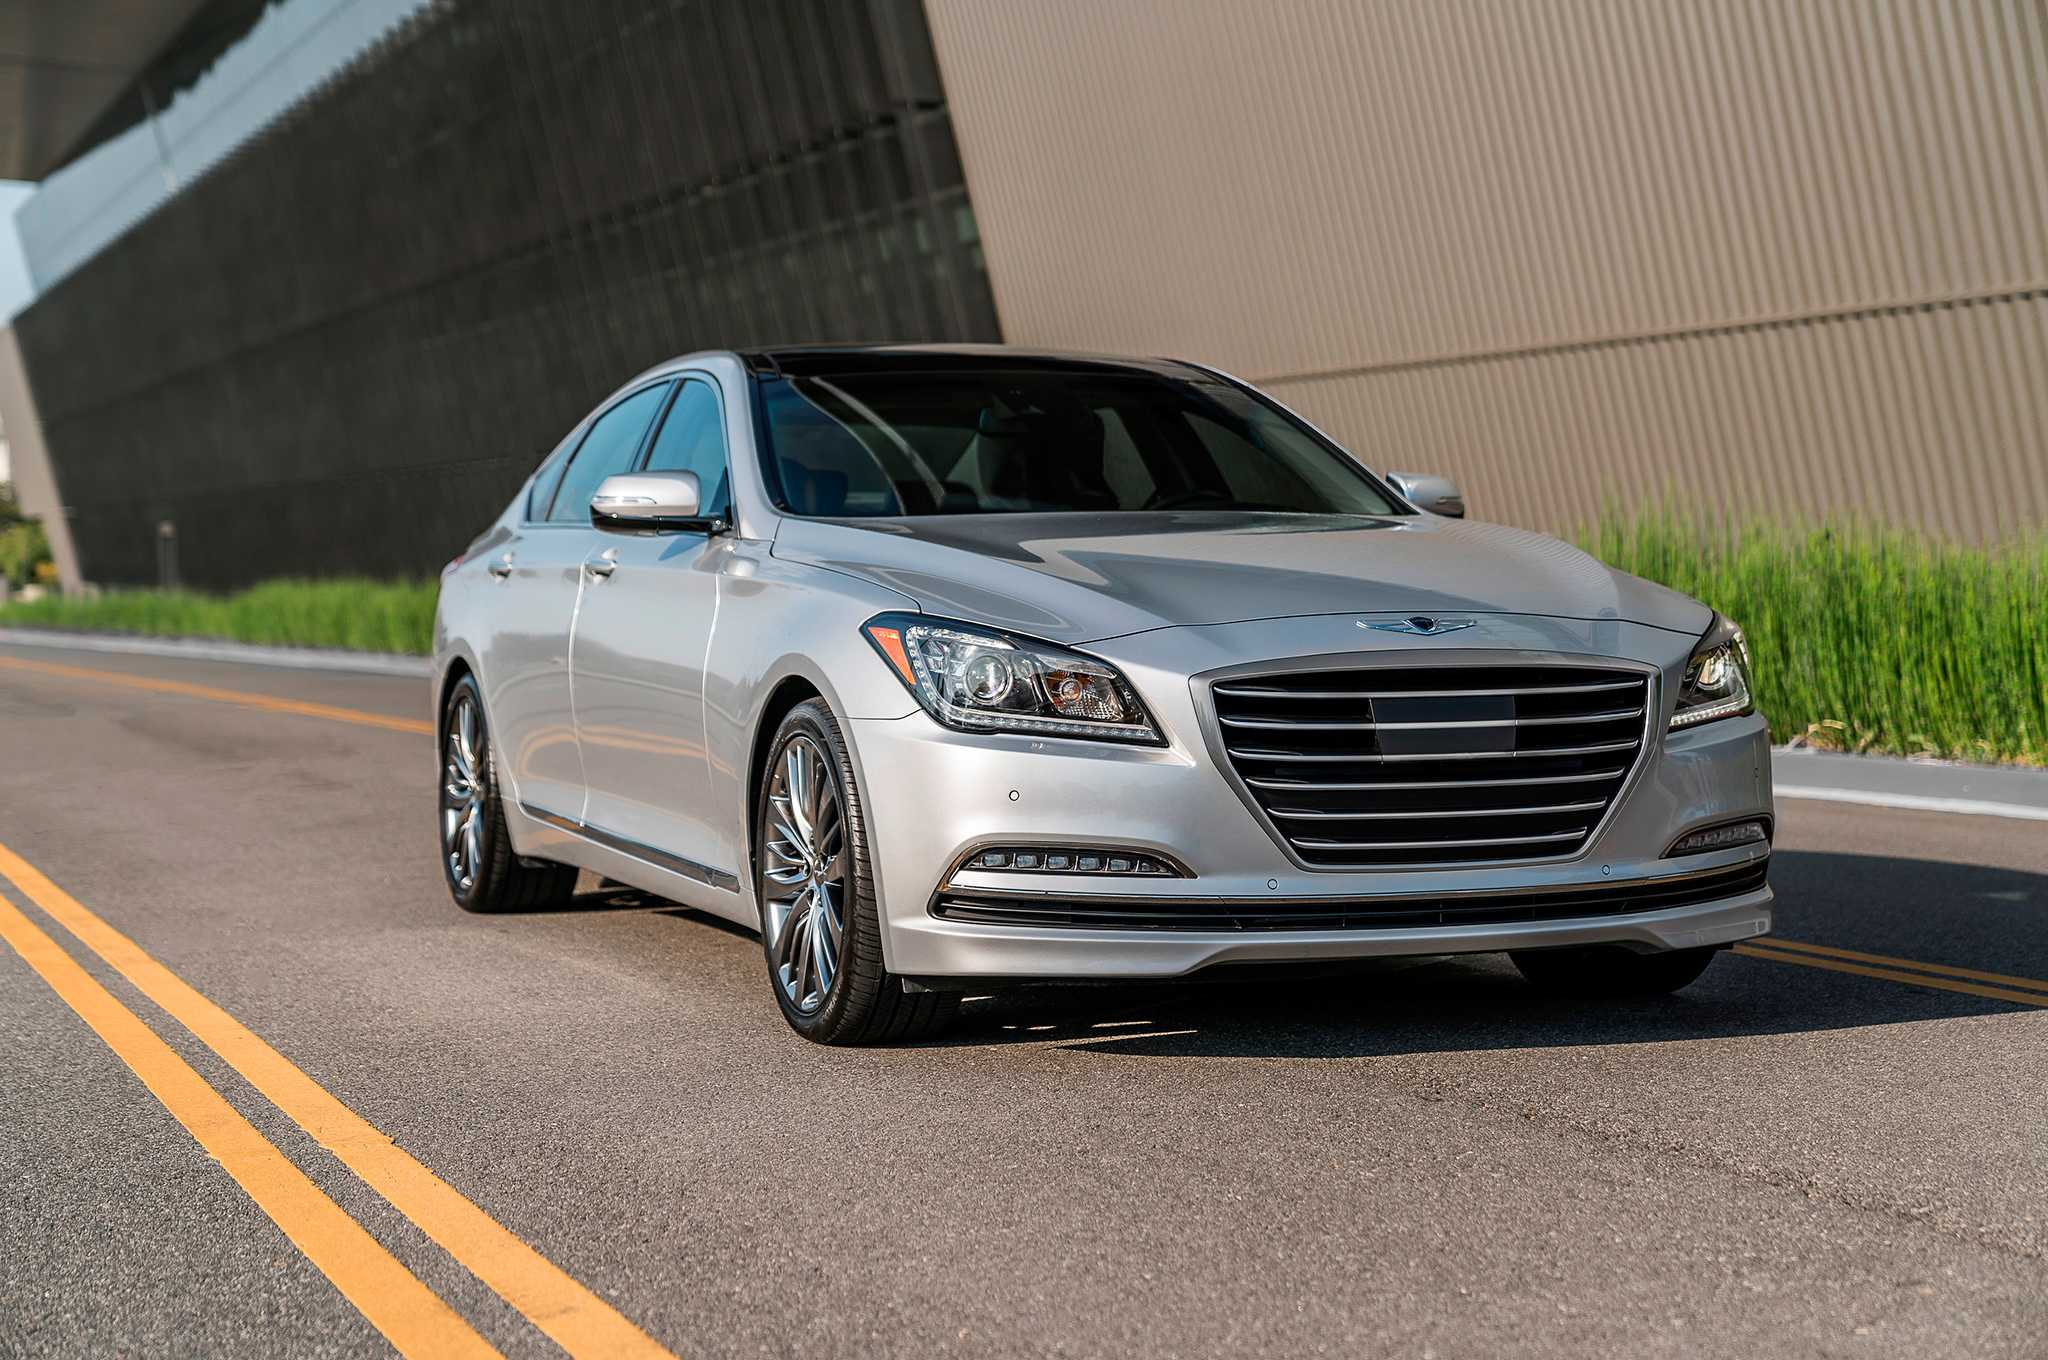 2017 Genesis G80 Upgraded With Active Safety Features